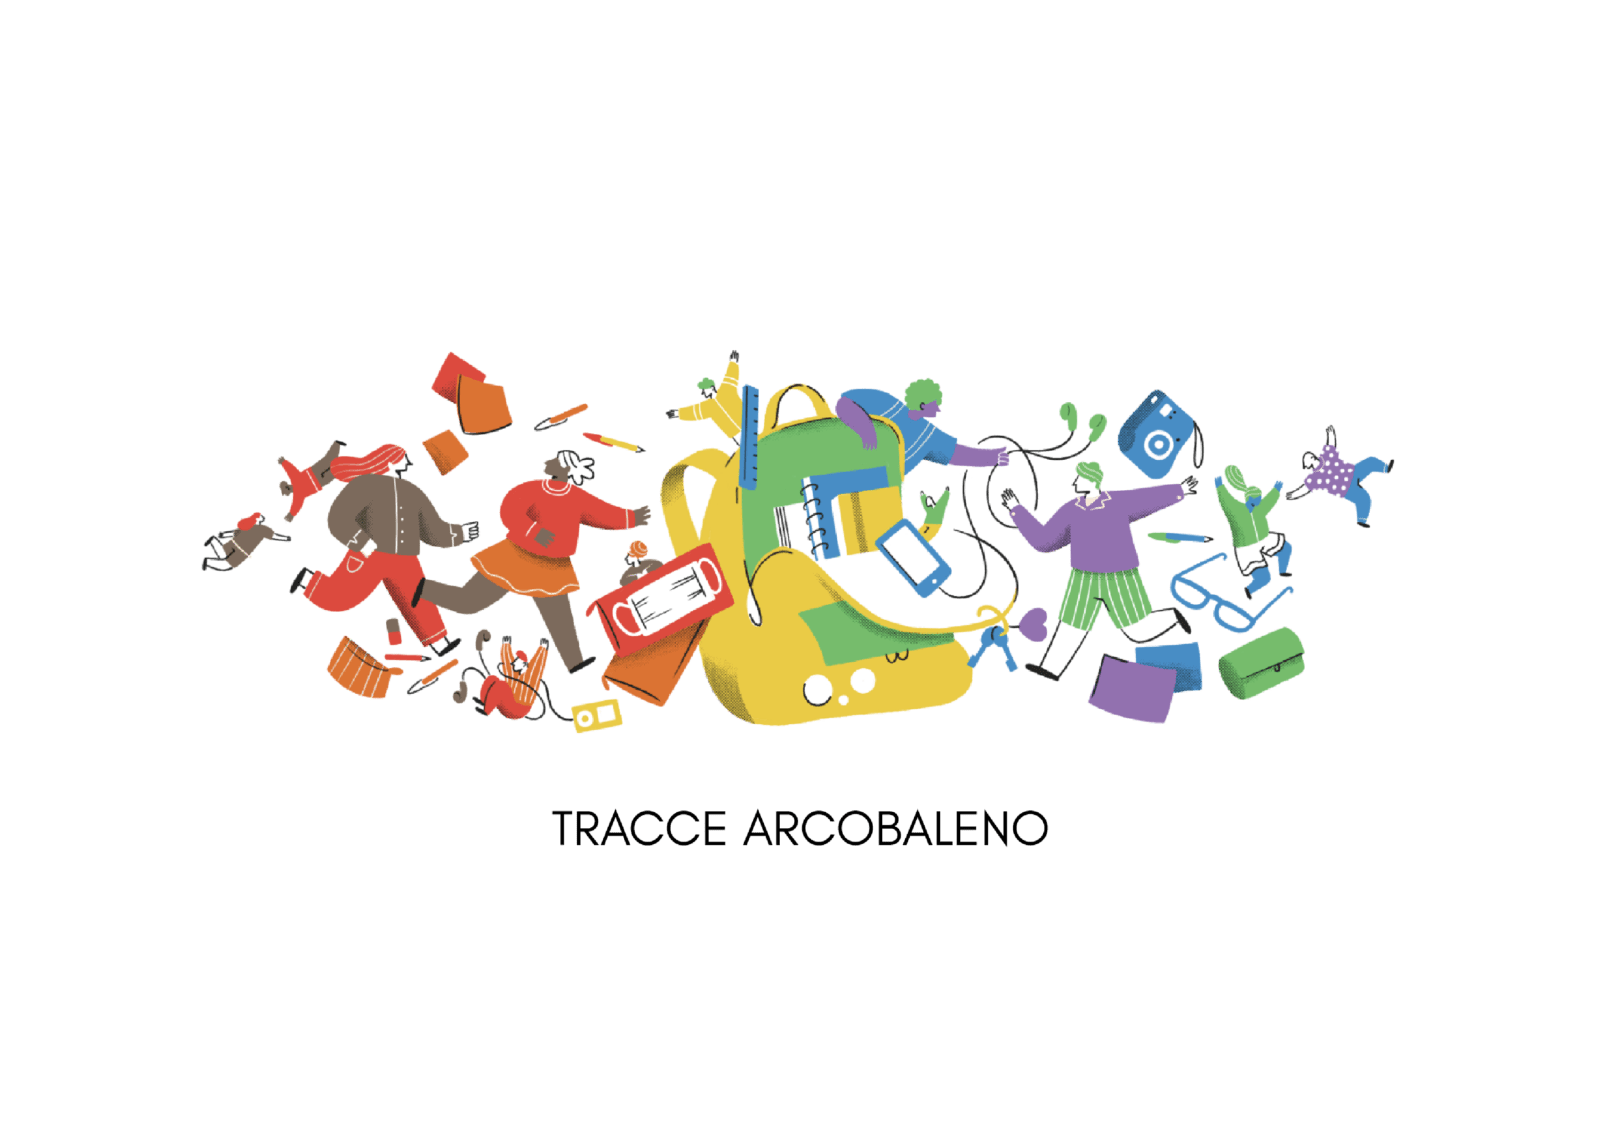 TracceArcobaleno